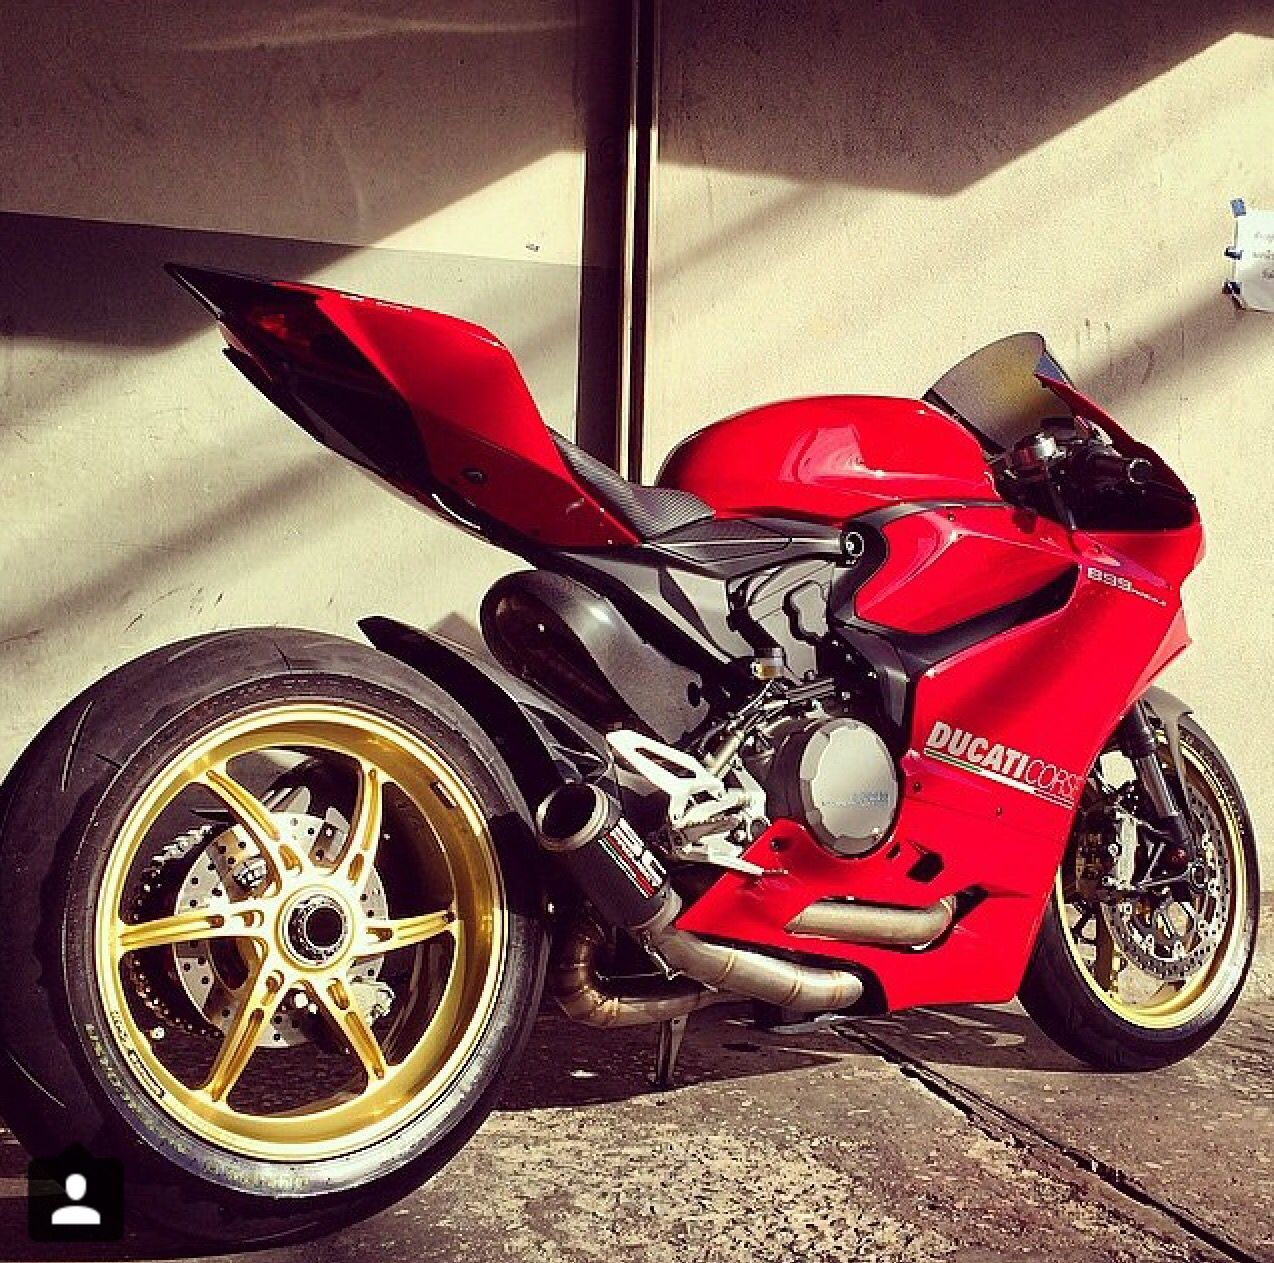 Ducati 899 Panigale With Single Side Swing Arm Sportbikes Ducati Panigale Motorcycle